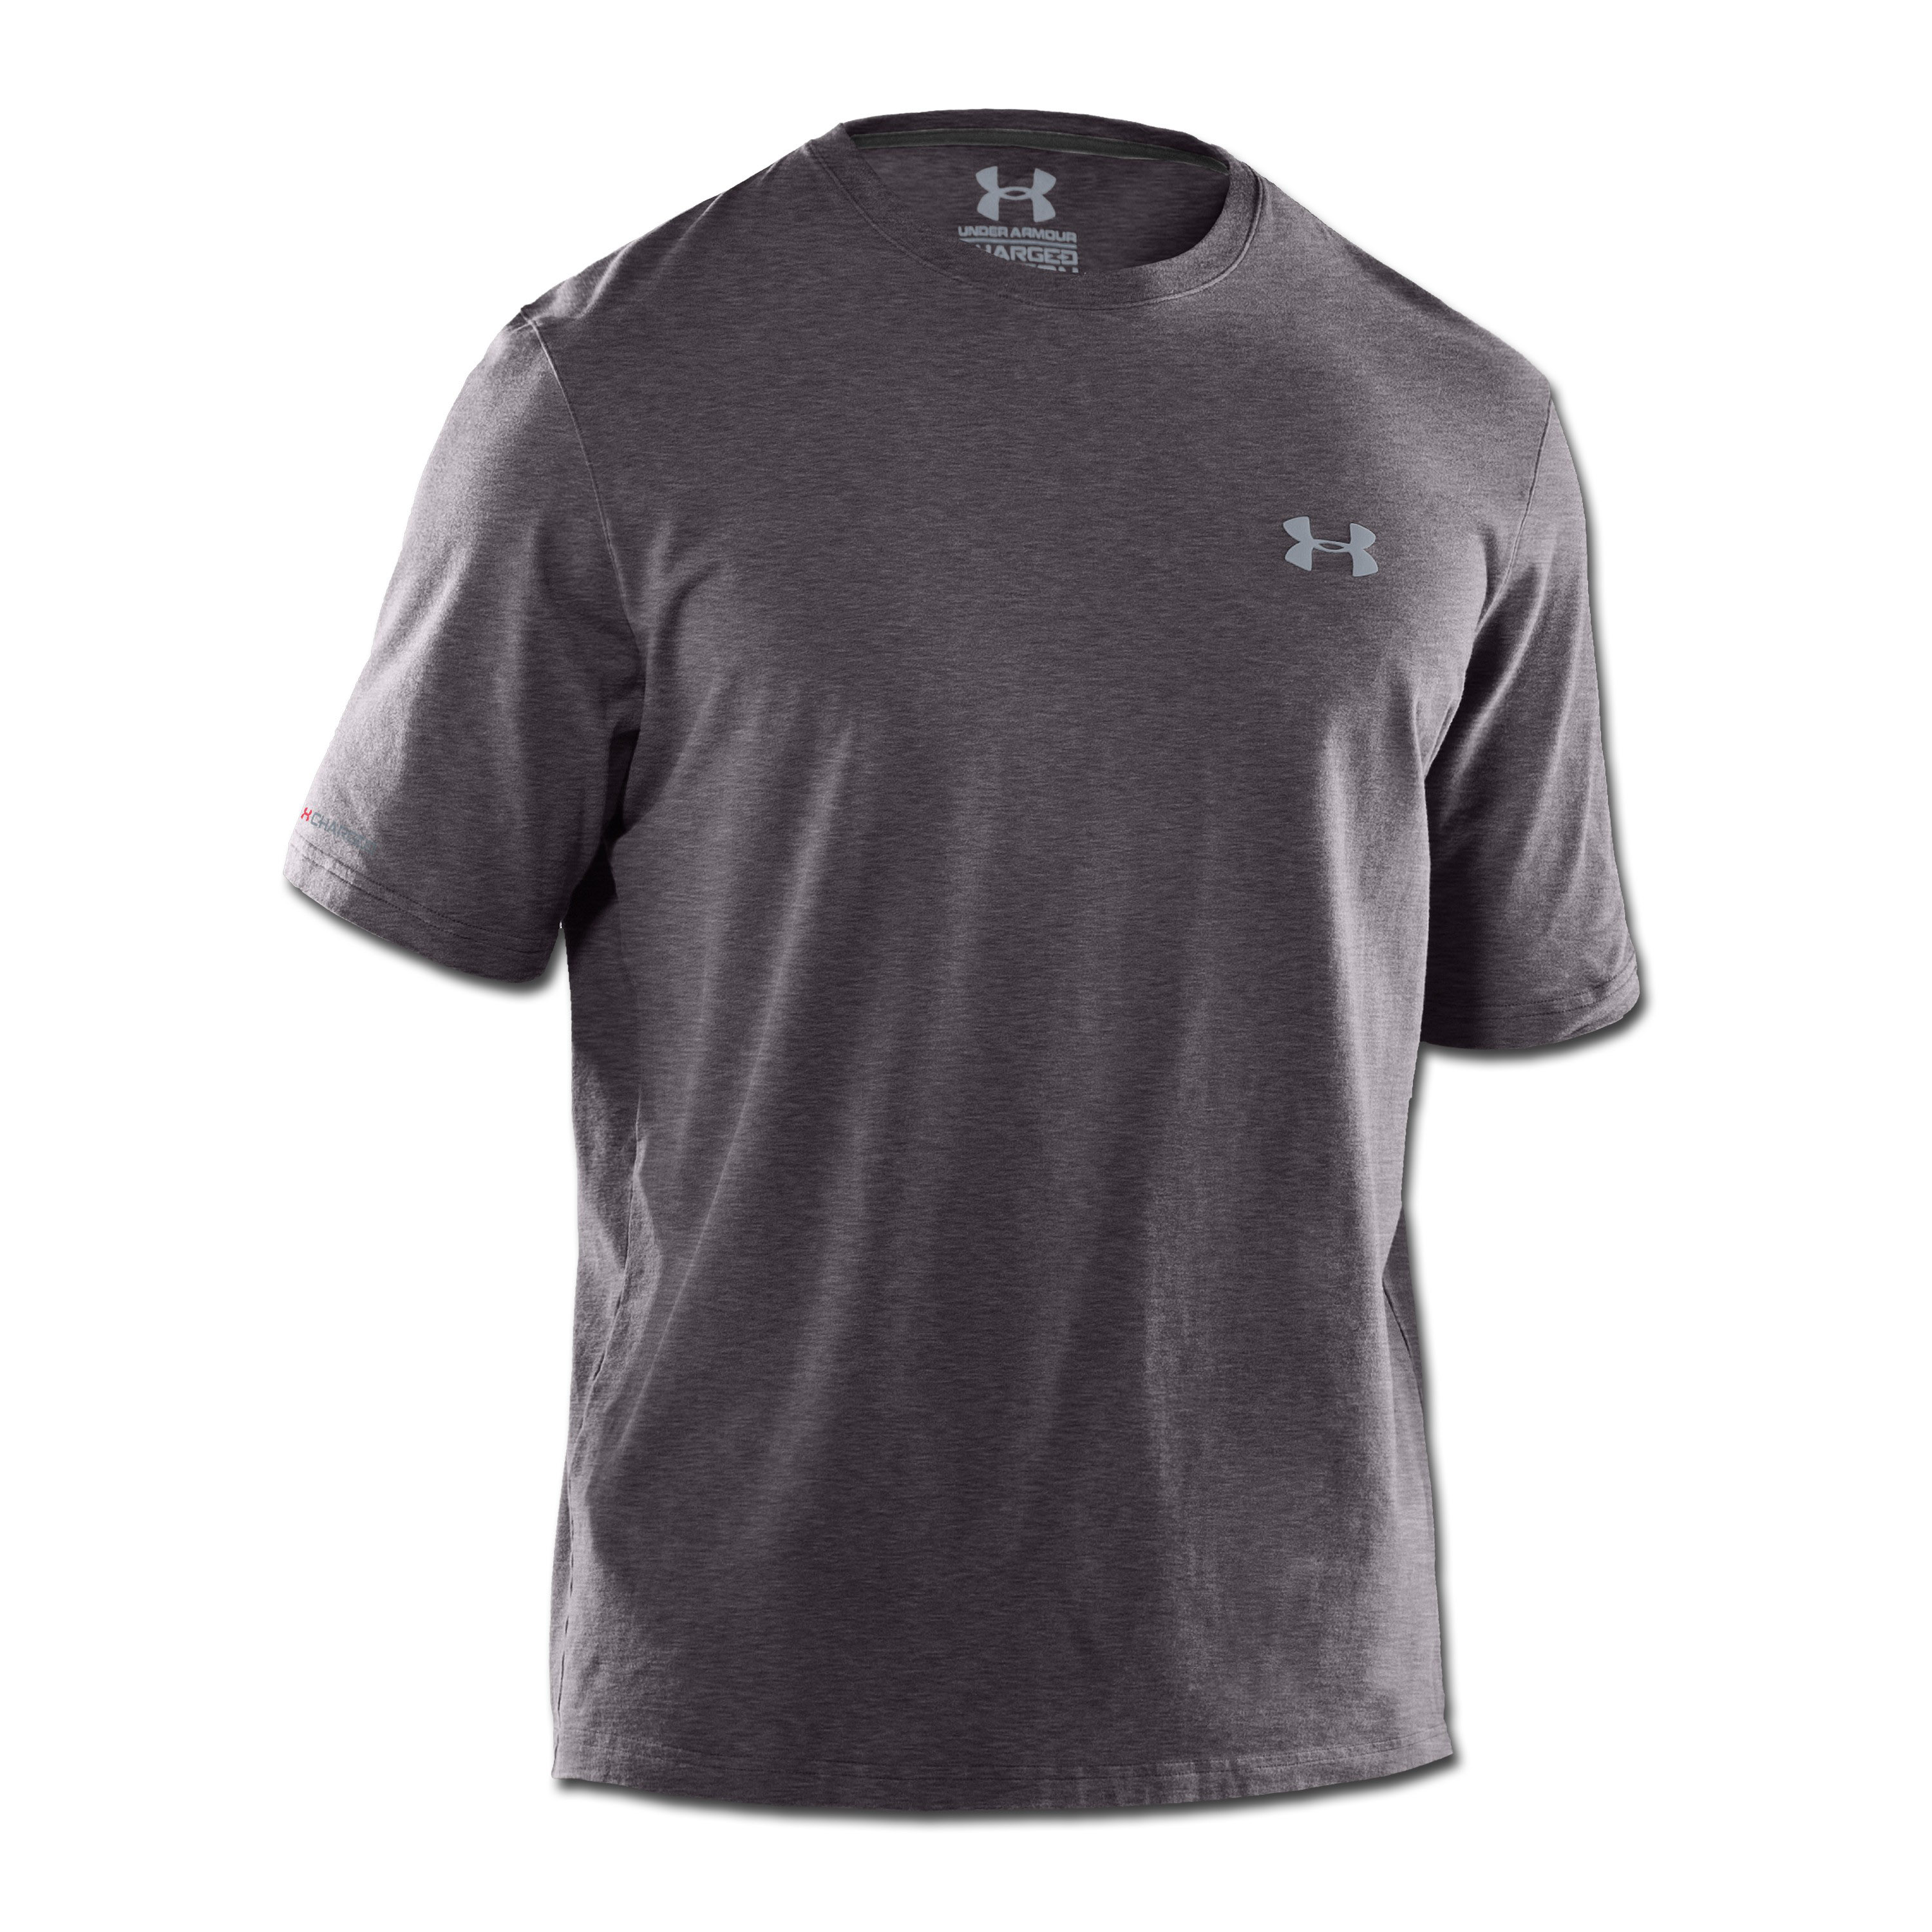 T-Shirt Under Armour HeatGear Charged Cotton anthracite